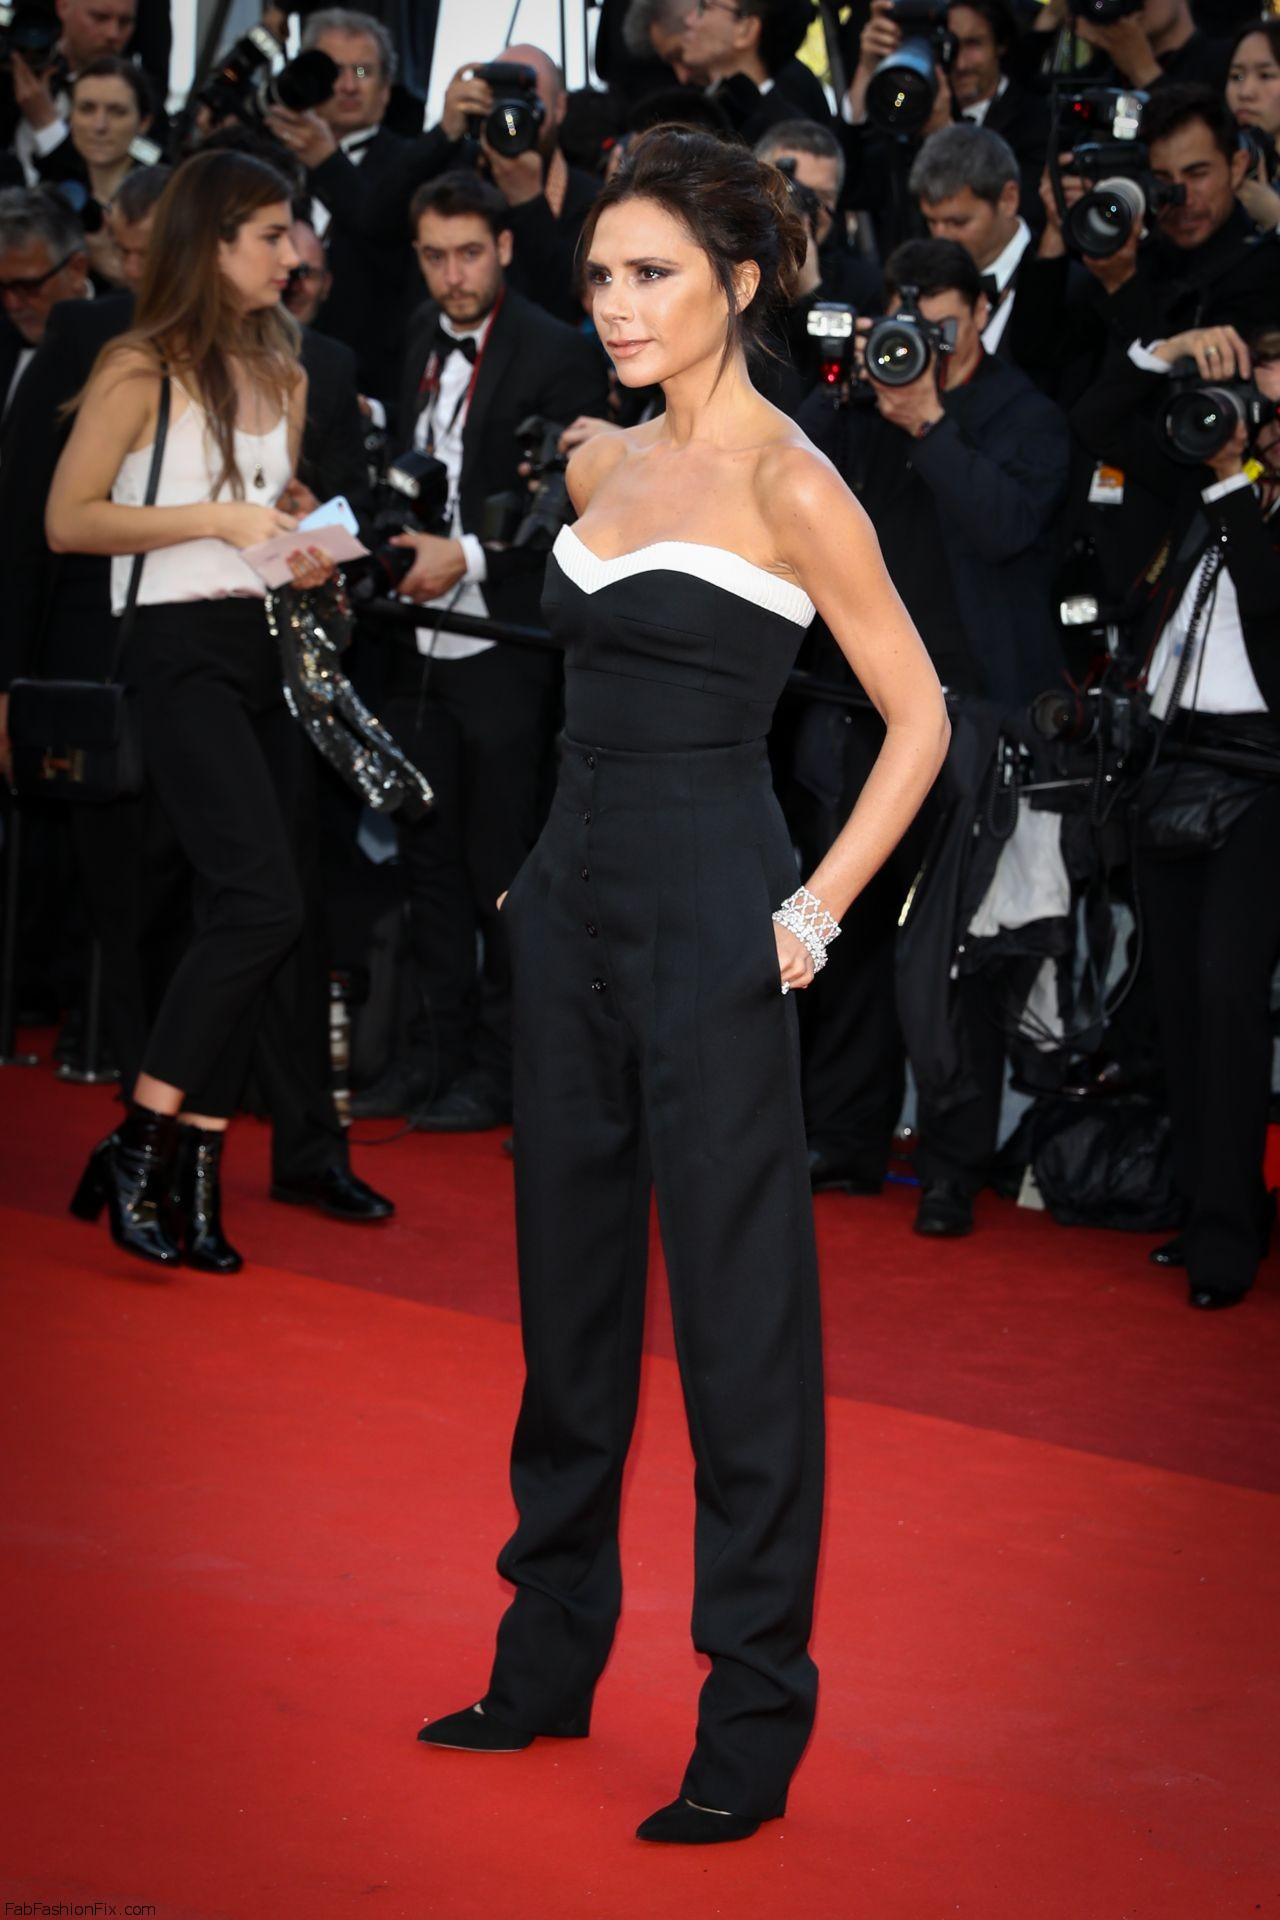 victoria-beckham-cafe-society-premiere-and-the-opening-night-gala-2016-cannes-film-festival-2